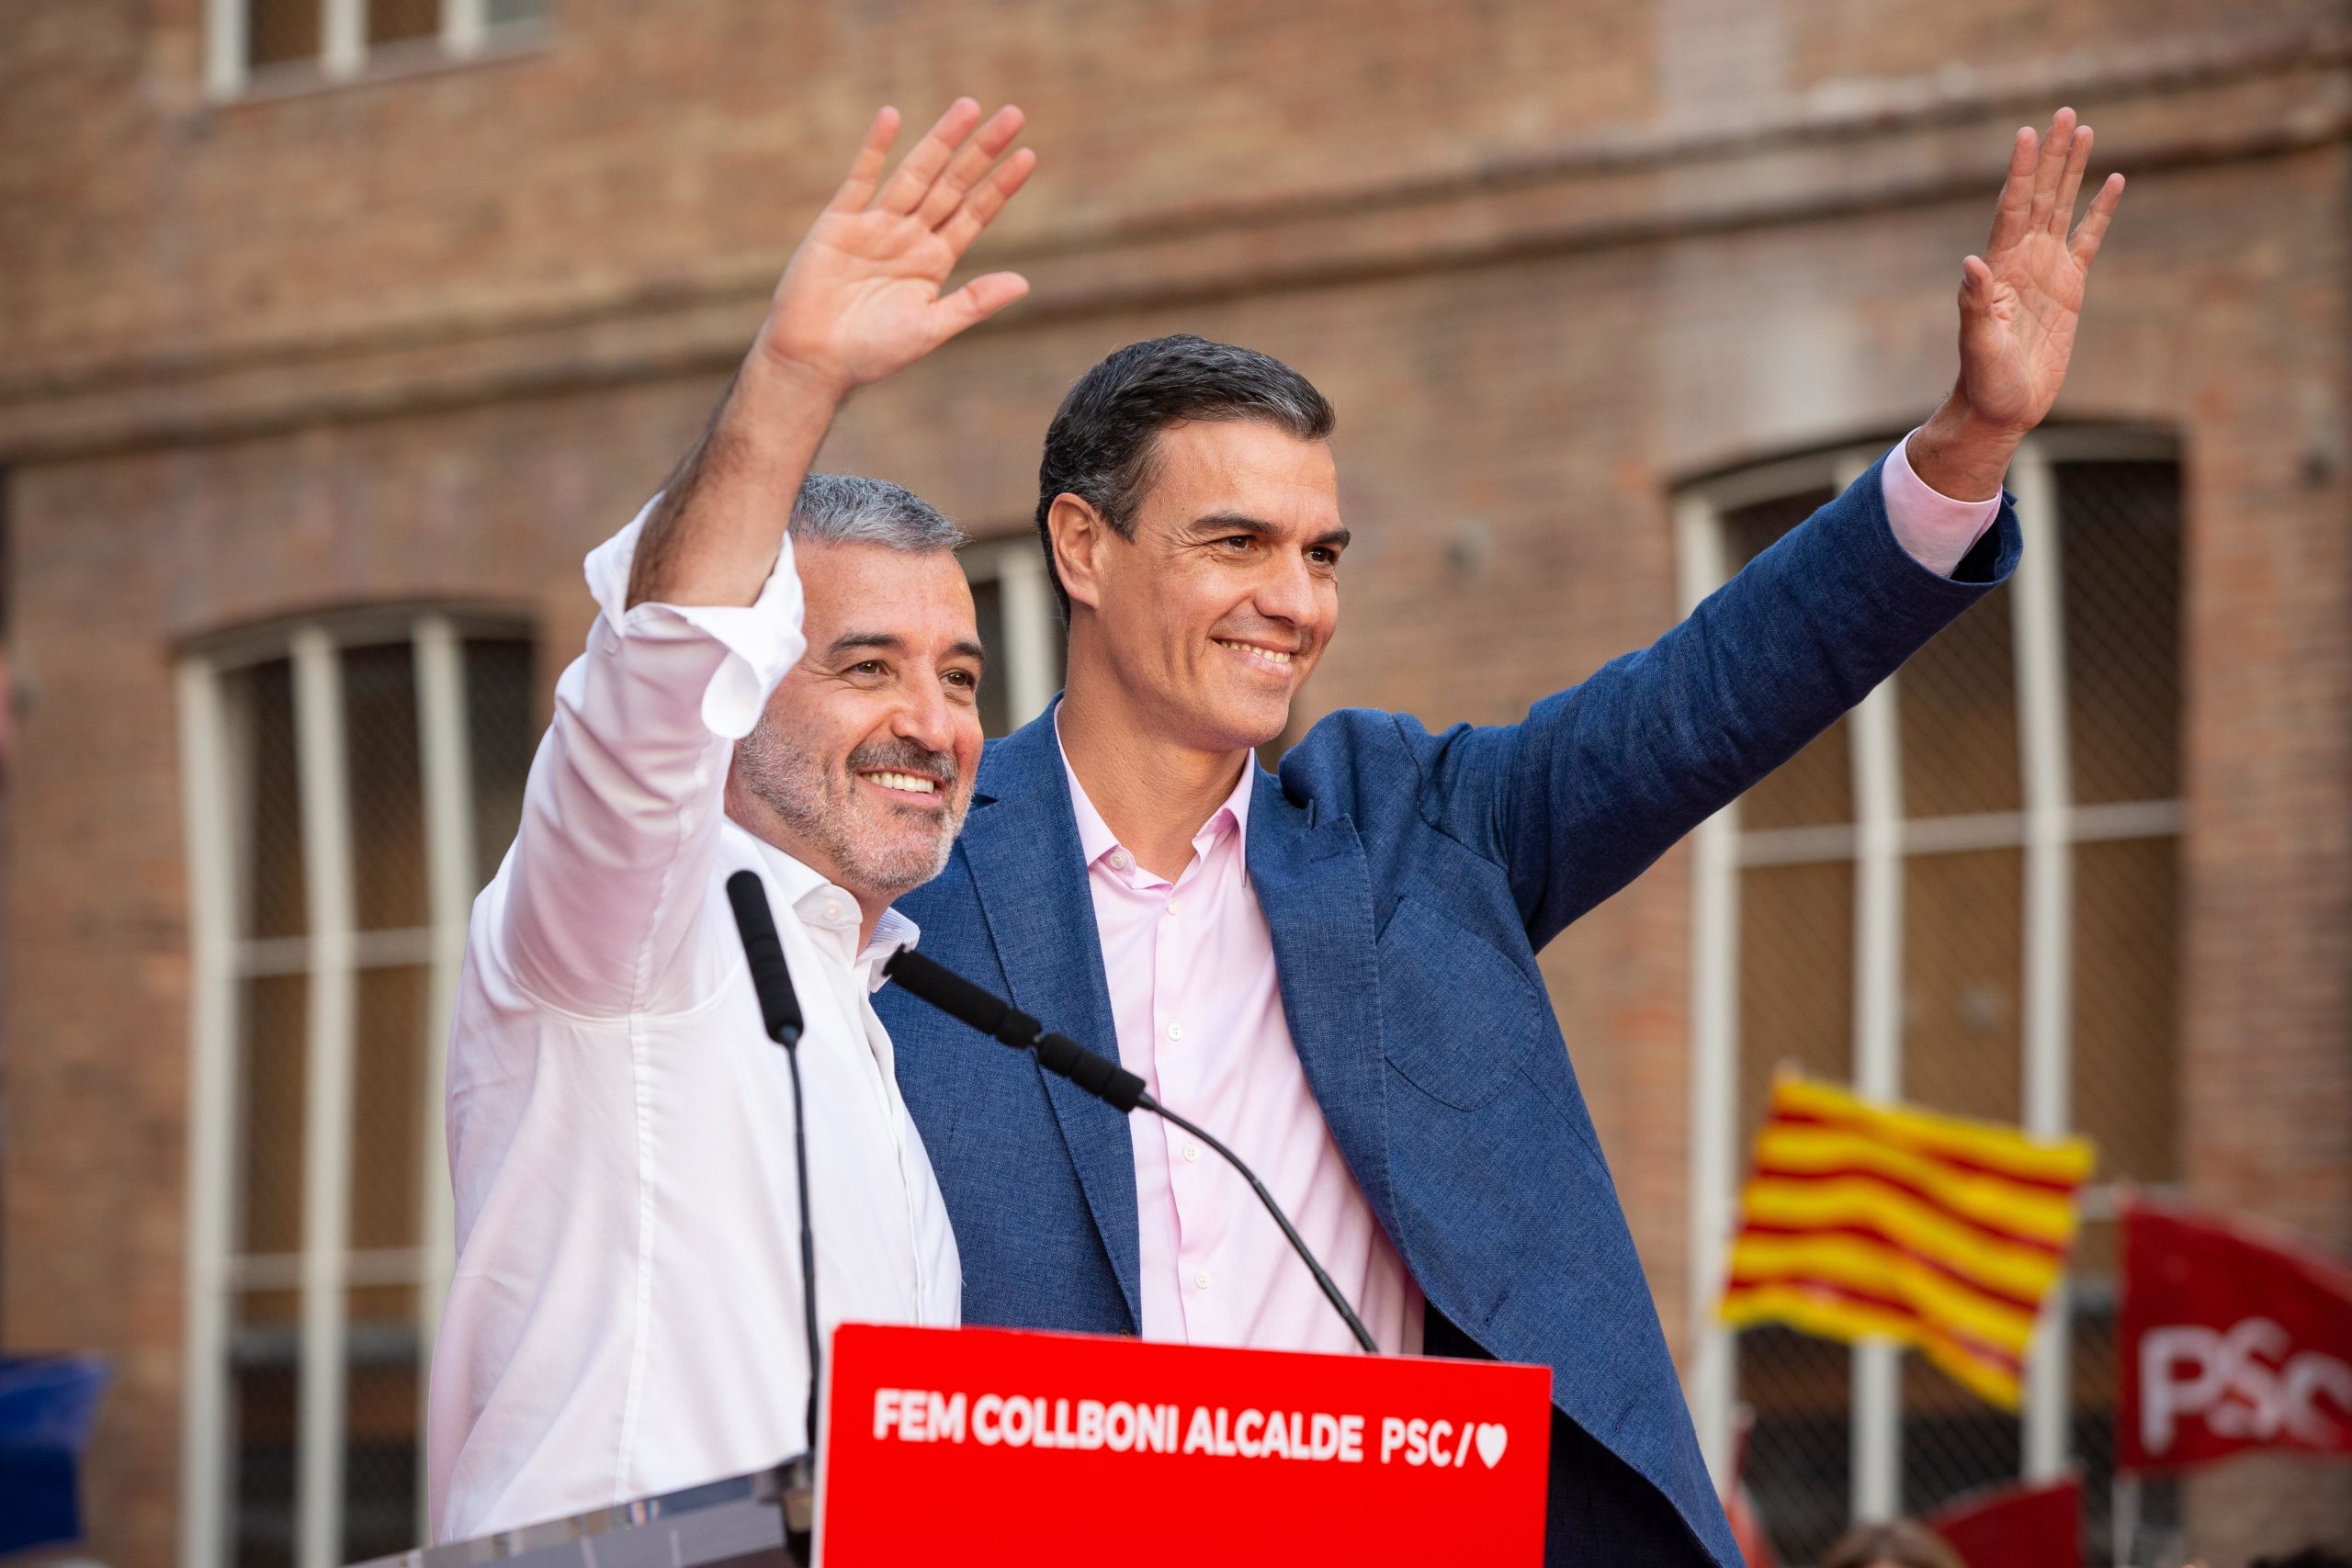 L'alcaldable Jaume Collboni i Pedro Sánchez a Sant Andreu. / Europa Press (David Zorrakino)